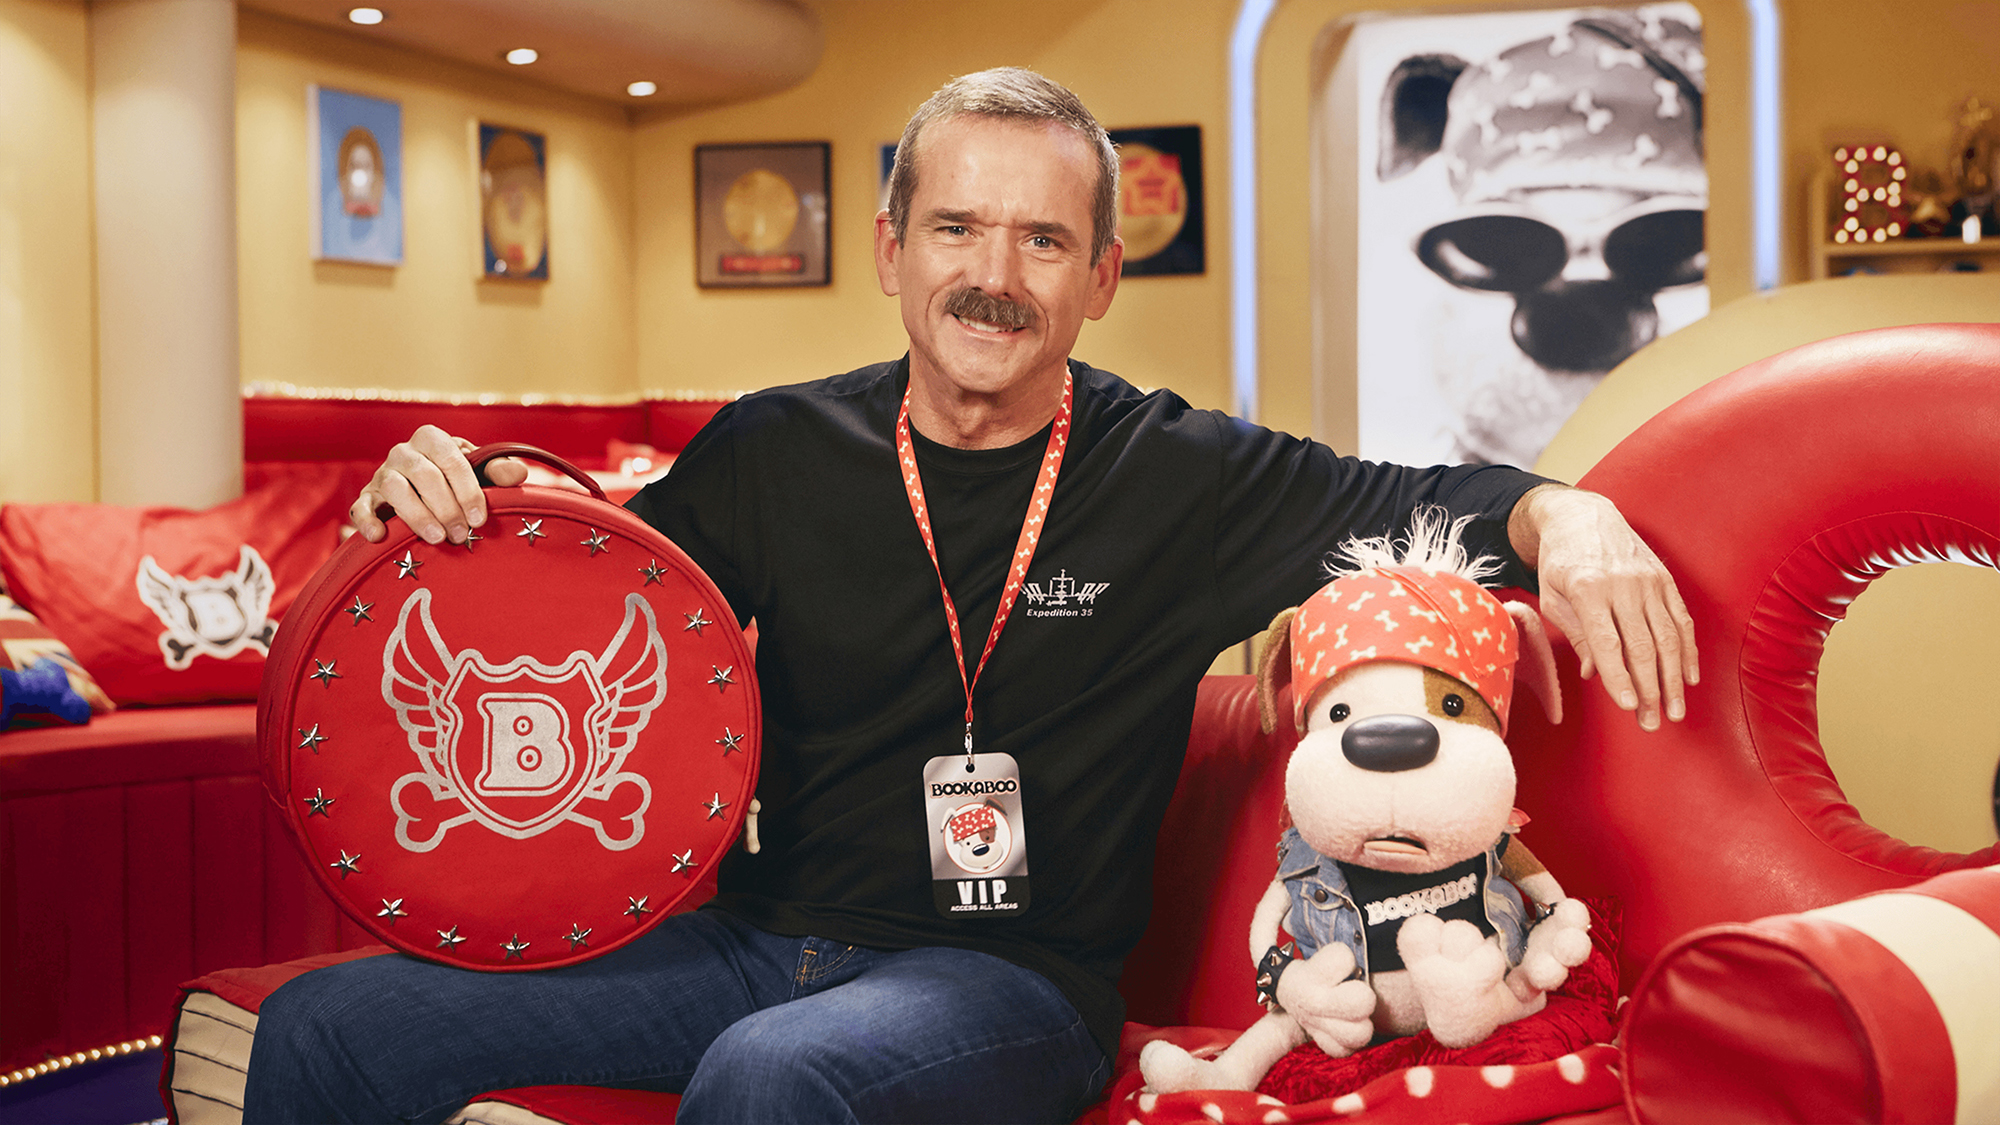 Watch Astronaut Chris Hadfield Read to an Adorable Puppet Dog